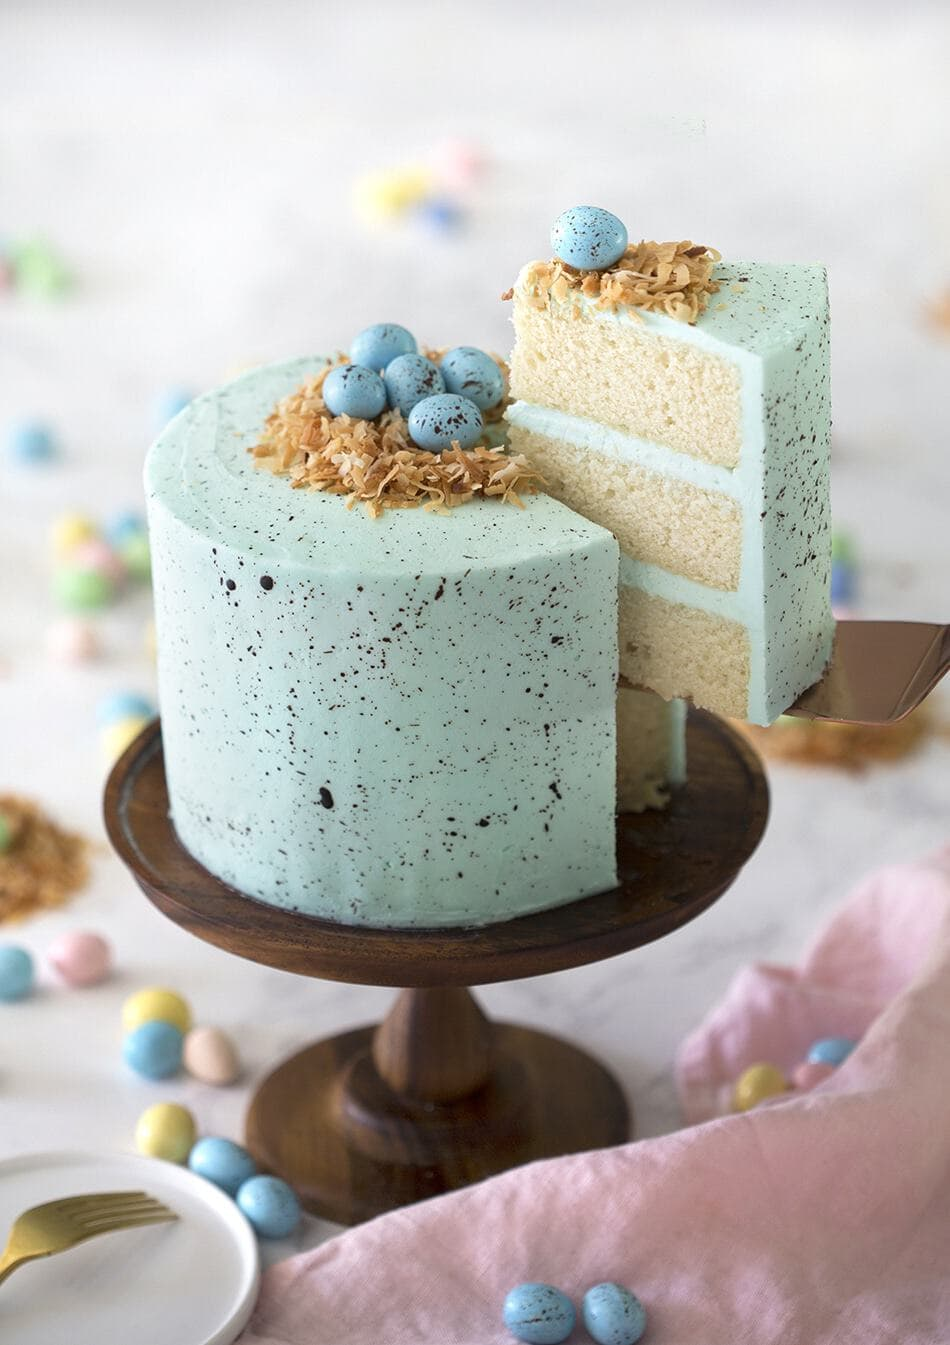 A three layered white cake, with a blue speckled frosting, topped with toasted coconut and blue candied eggs on top.